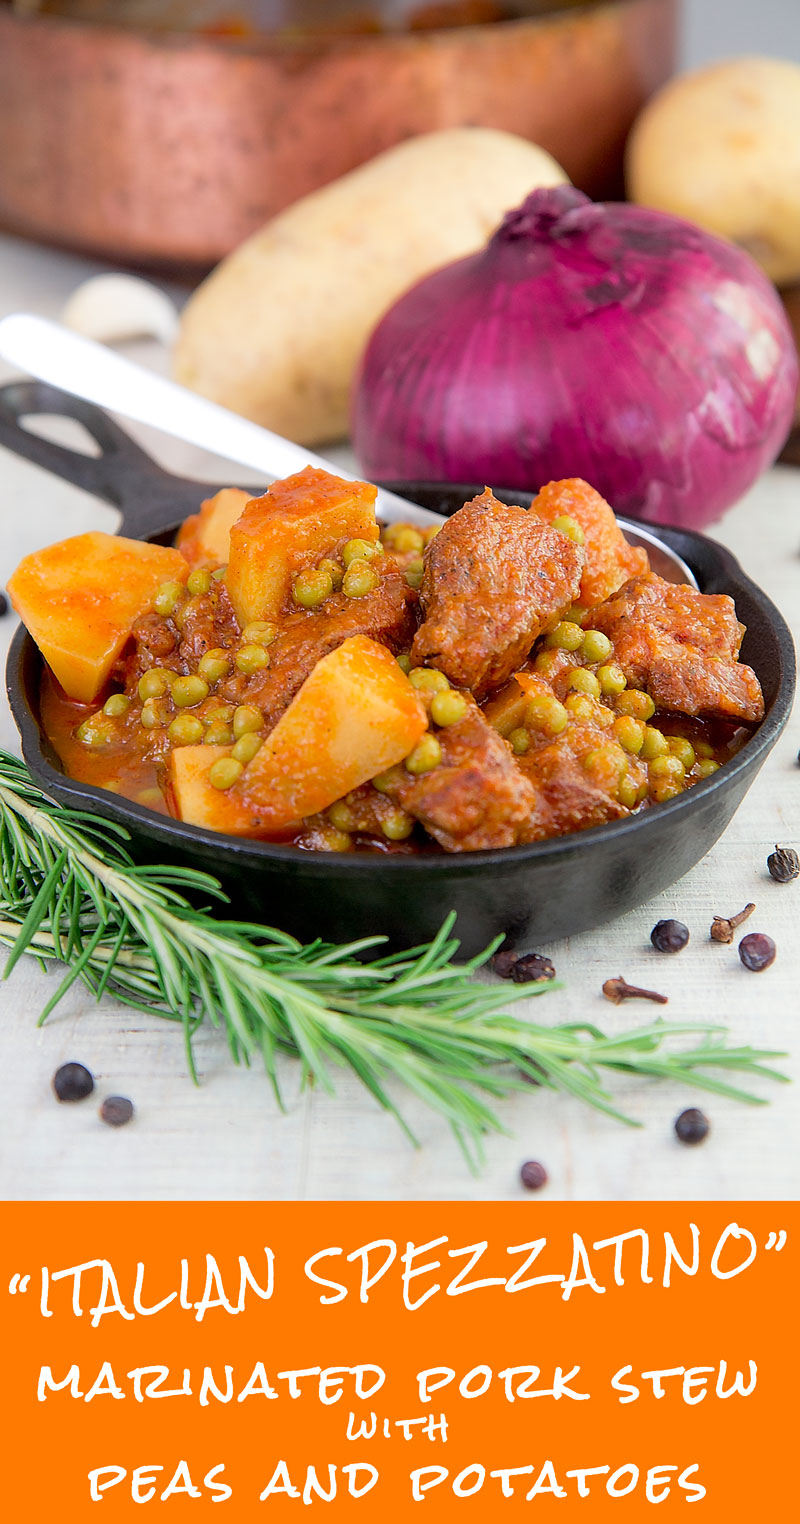 ITALIAN PORK SHOULDER STEW with potatoes and peas (Spezzatino)